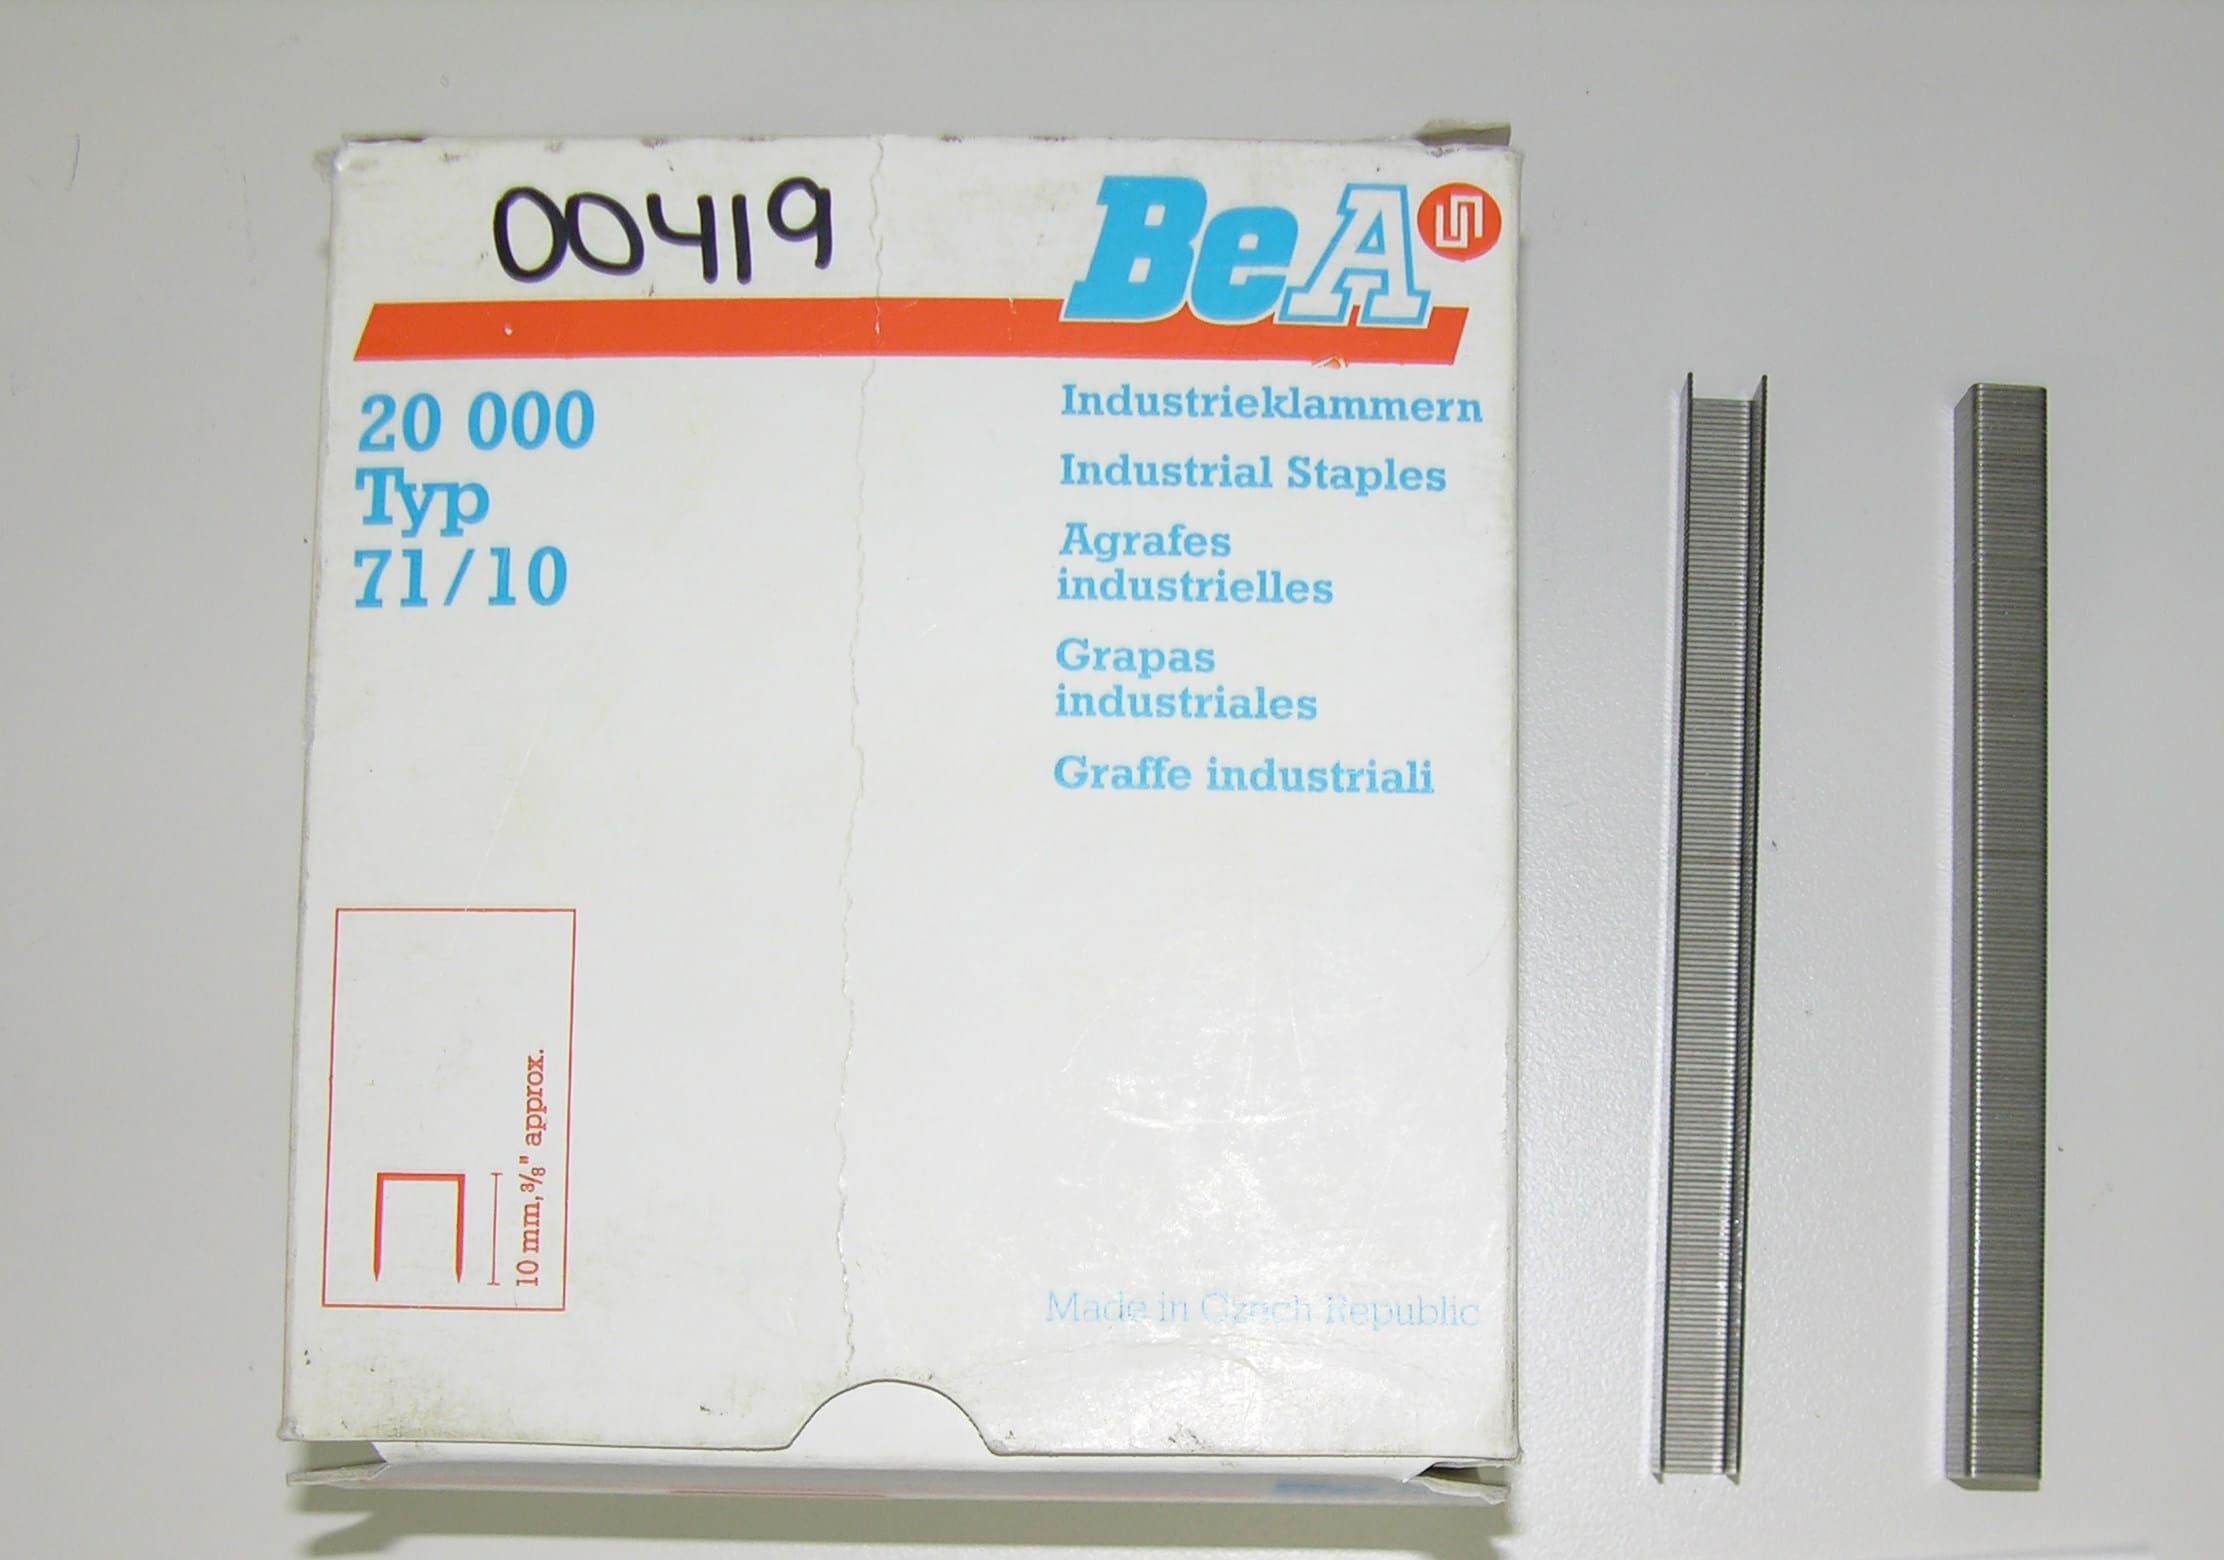 Staples 3/8 X 1/2 5000/Box Stainless Steel